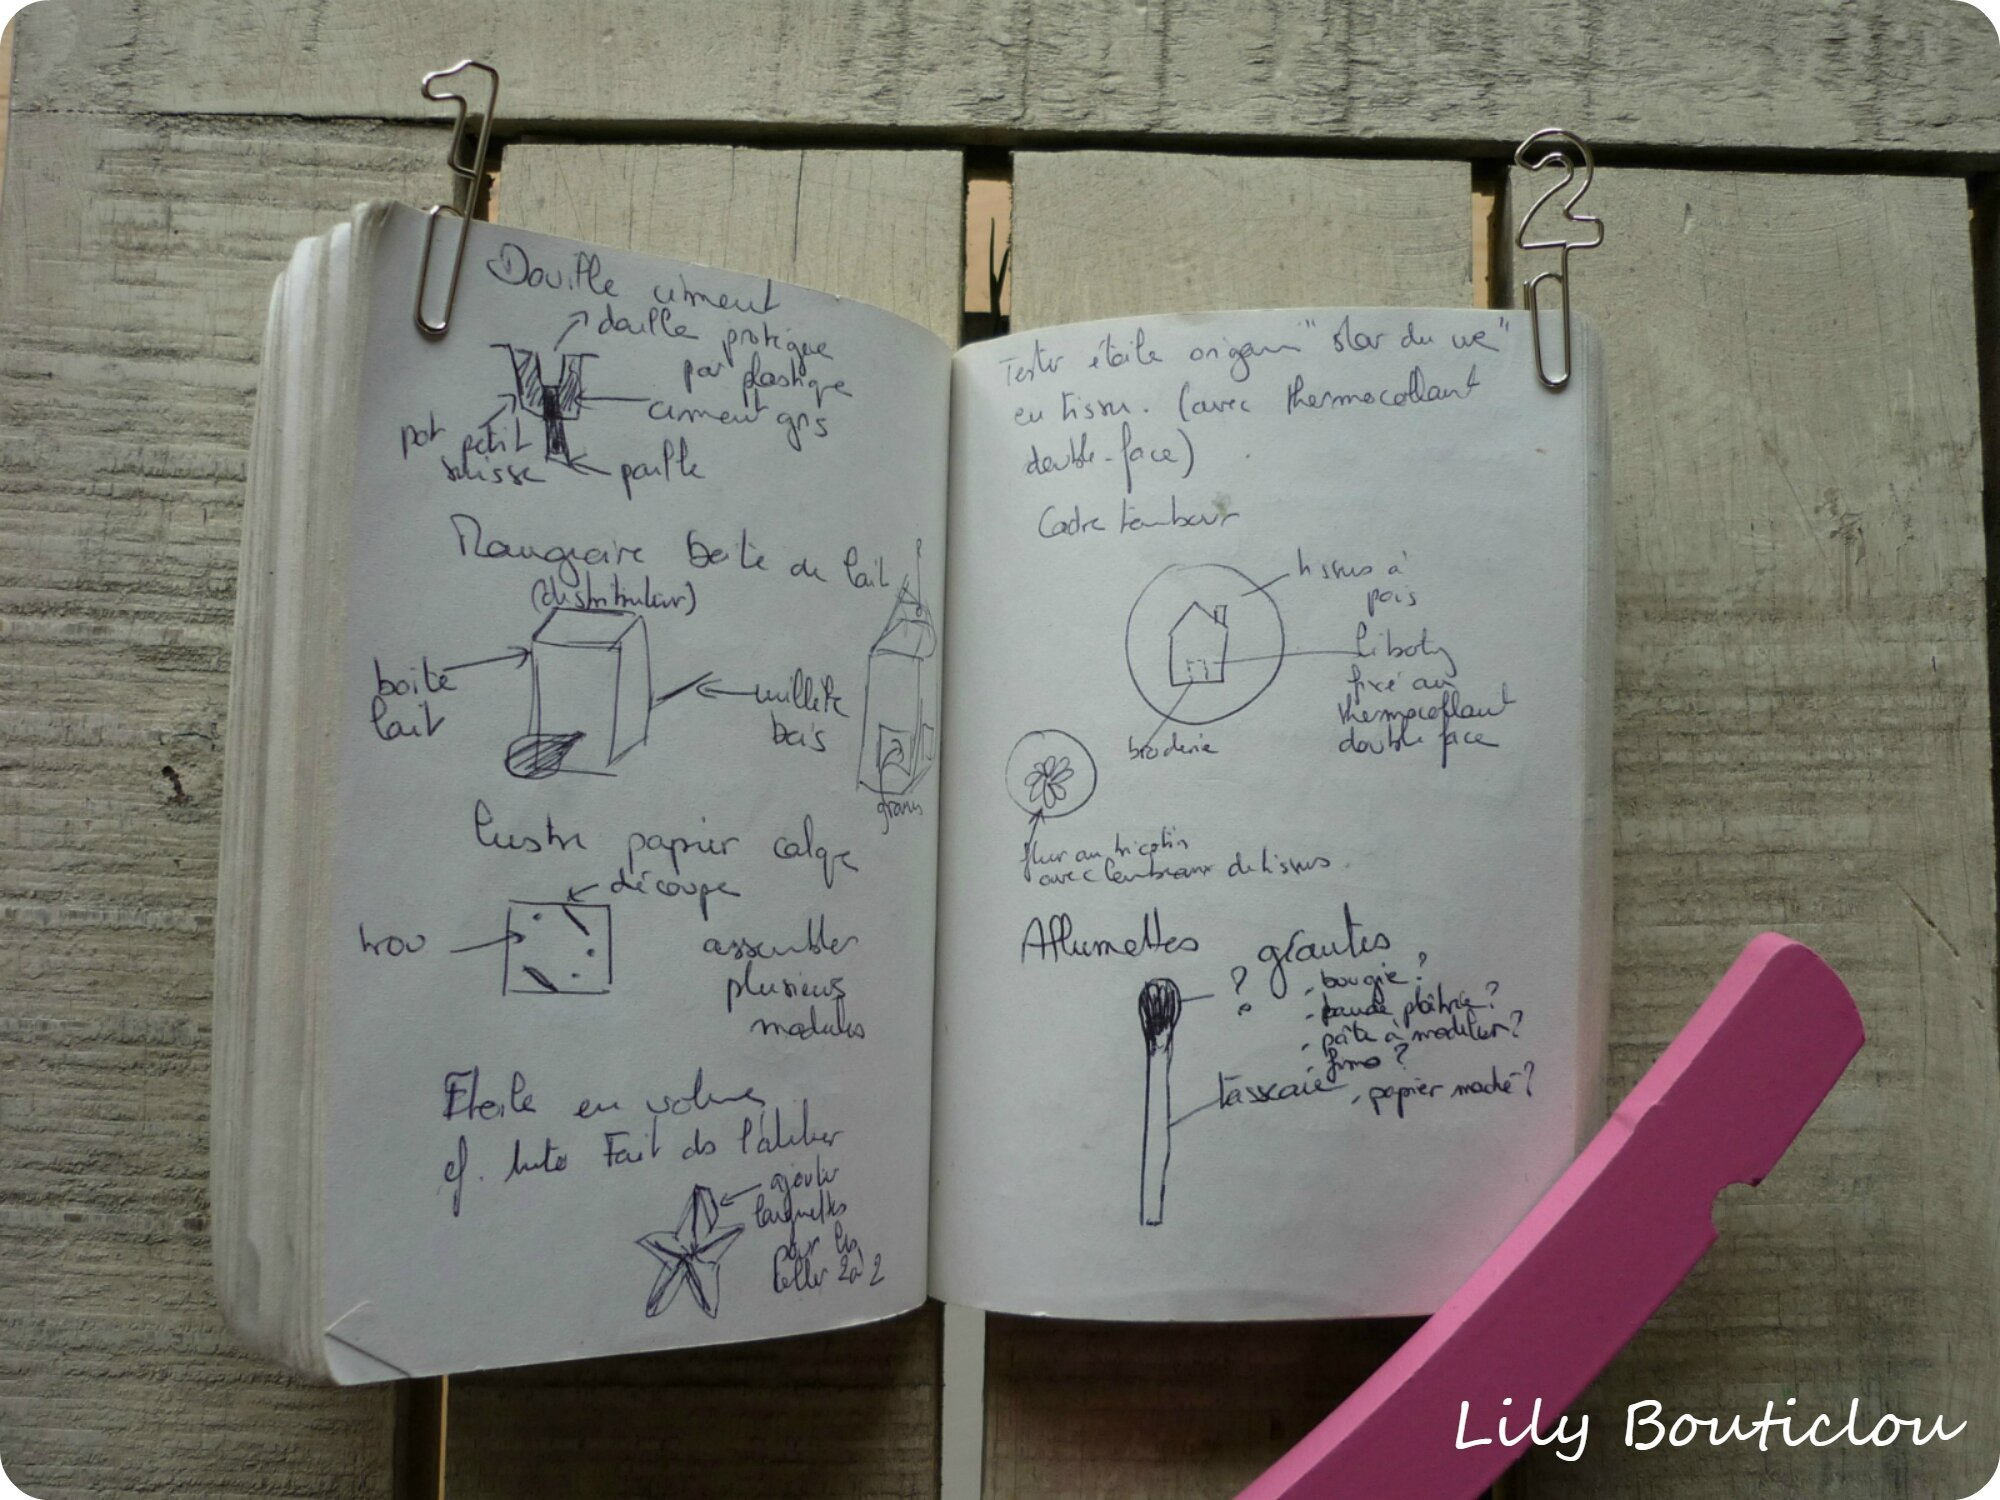 liebster award to do list lilybouticlou